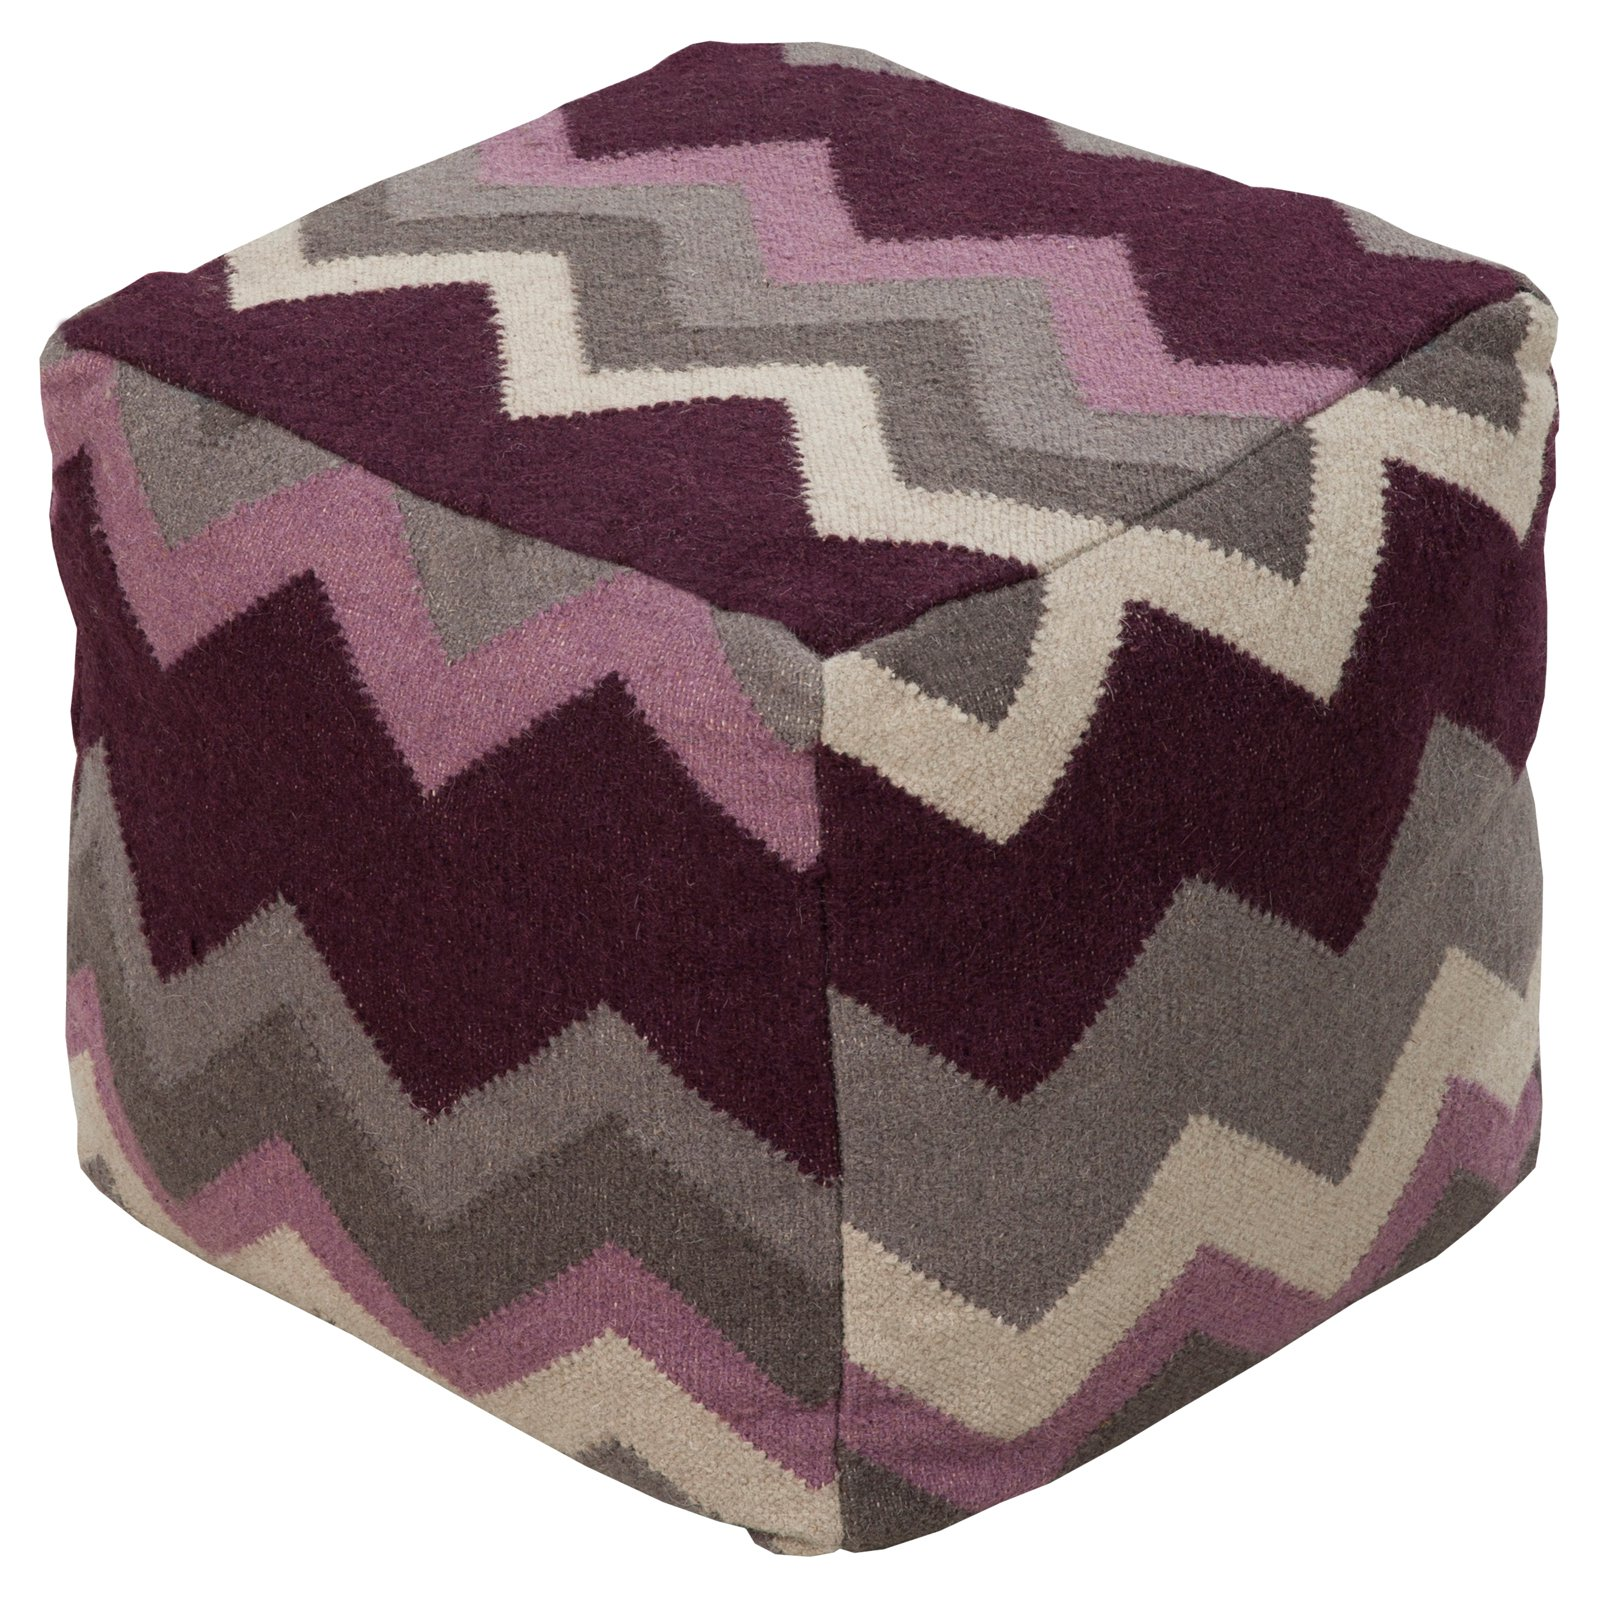 Surya 18 in. Cube Wool Pouf Deep Wine by Surya